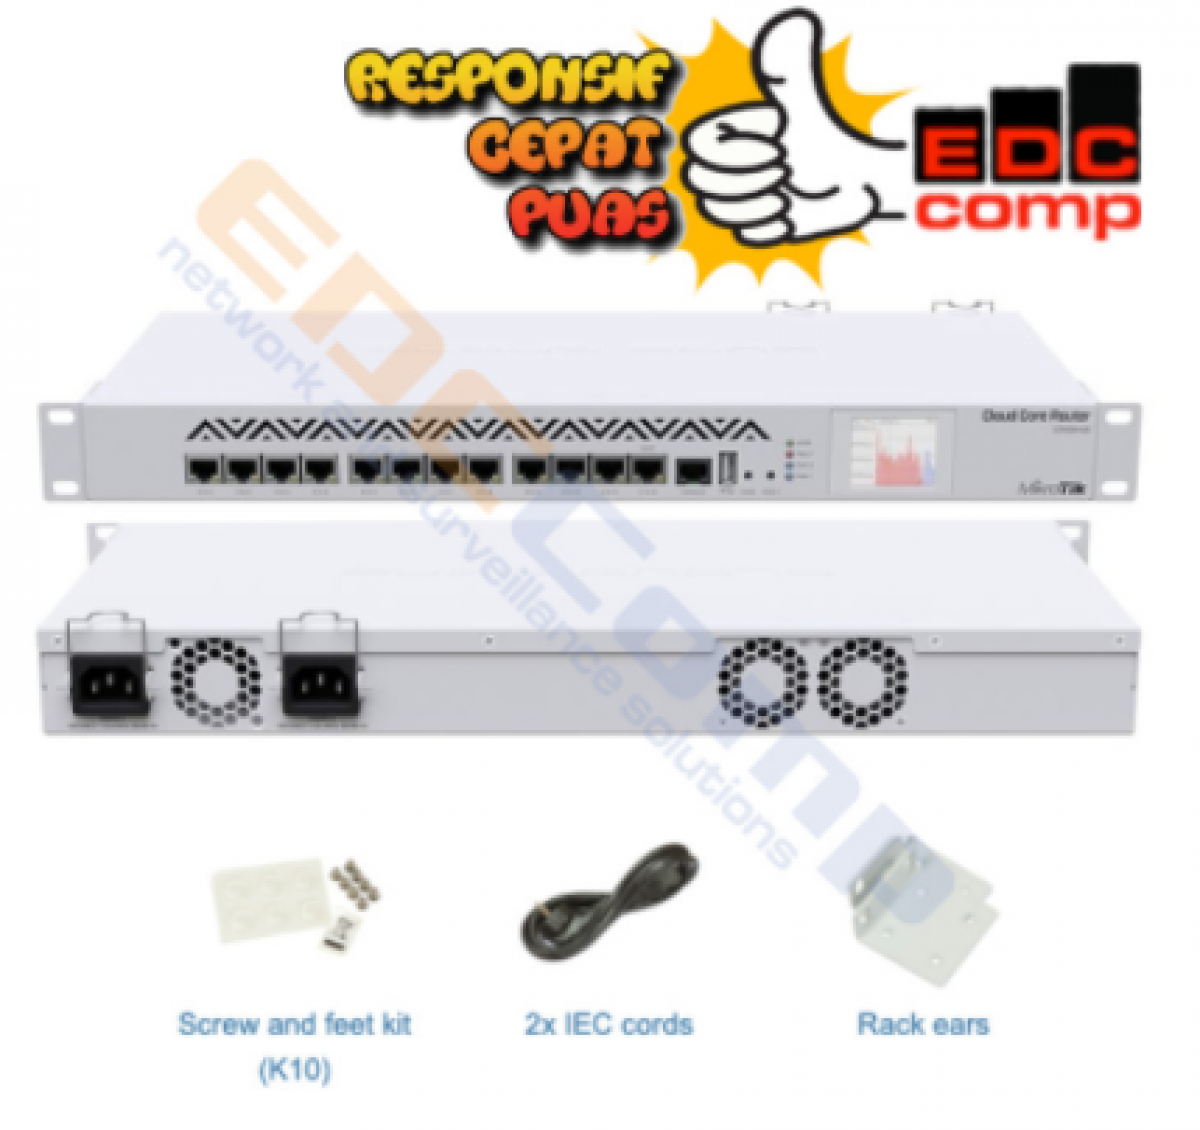 Routerboard CCR1016-12G - EdcComp